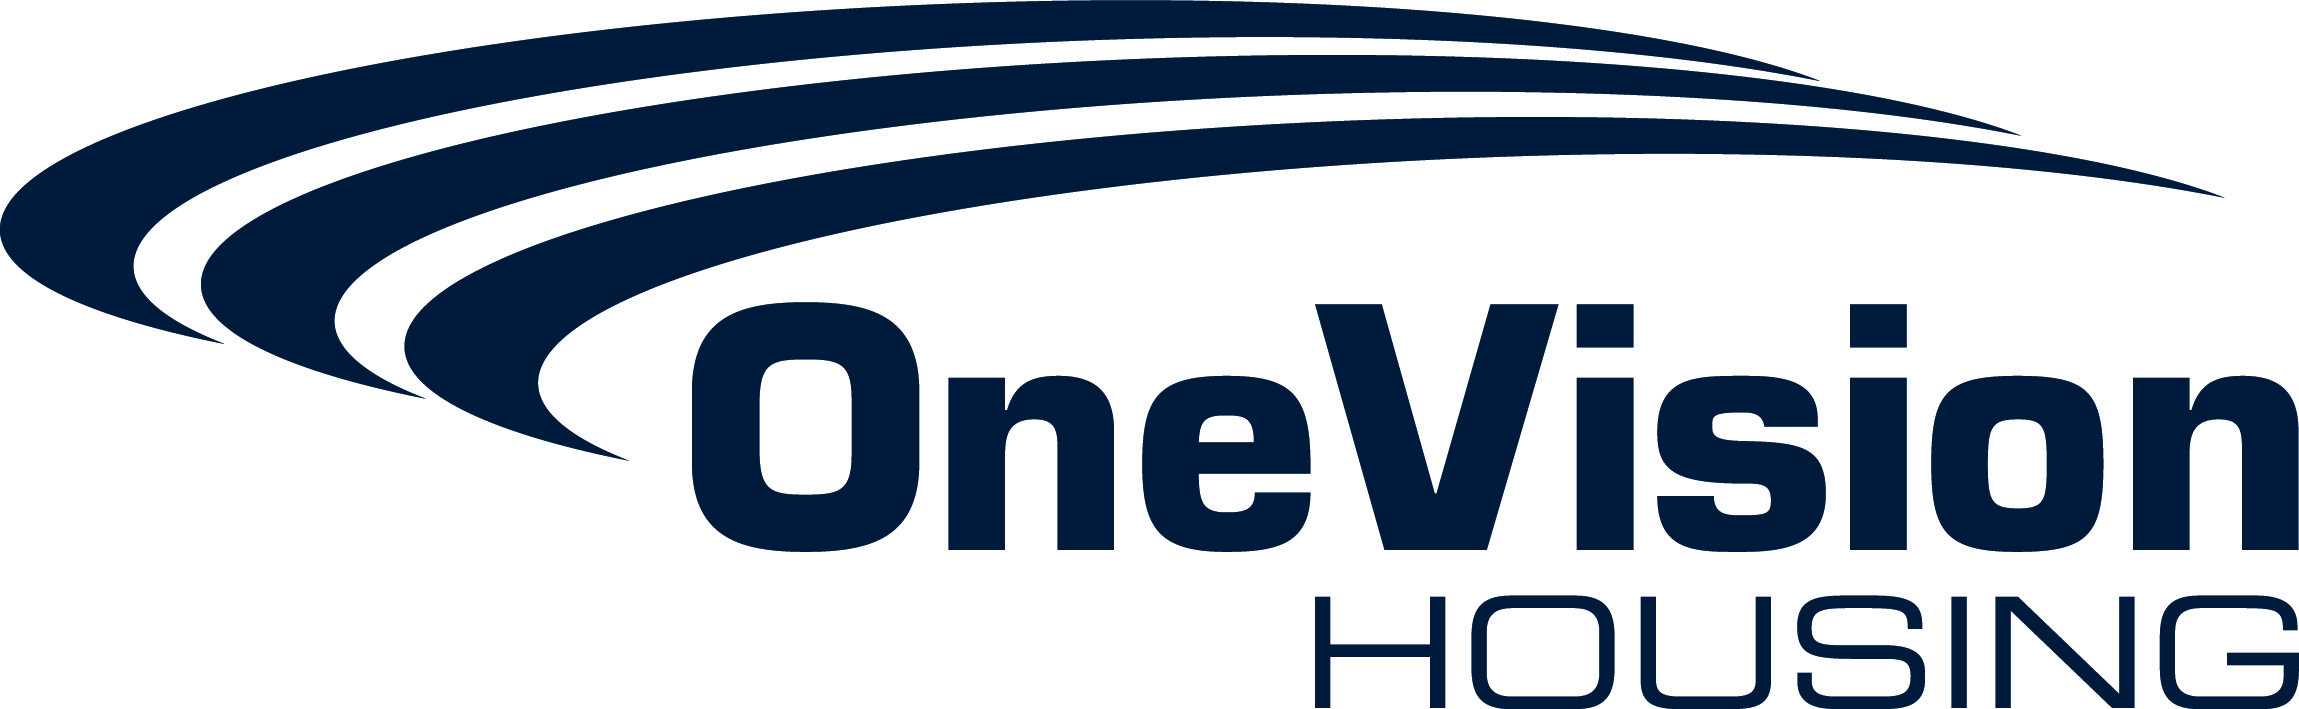 We would like to welcome One Vision Housing to ContactBuilder